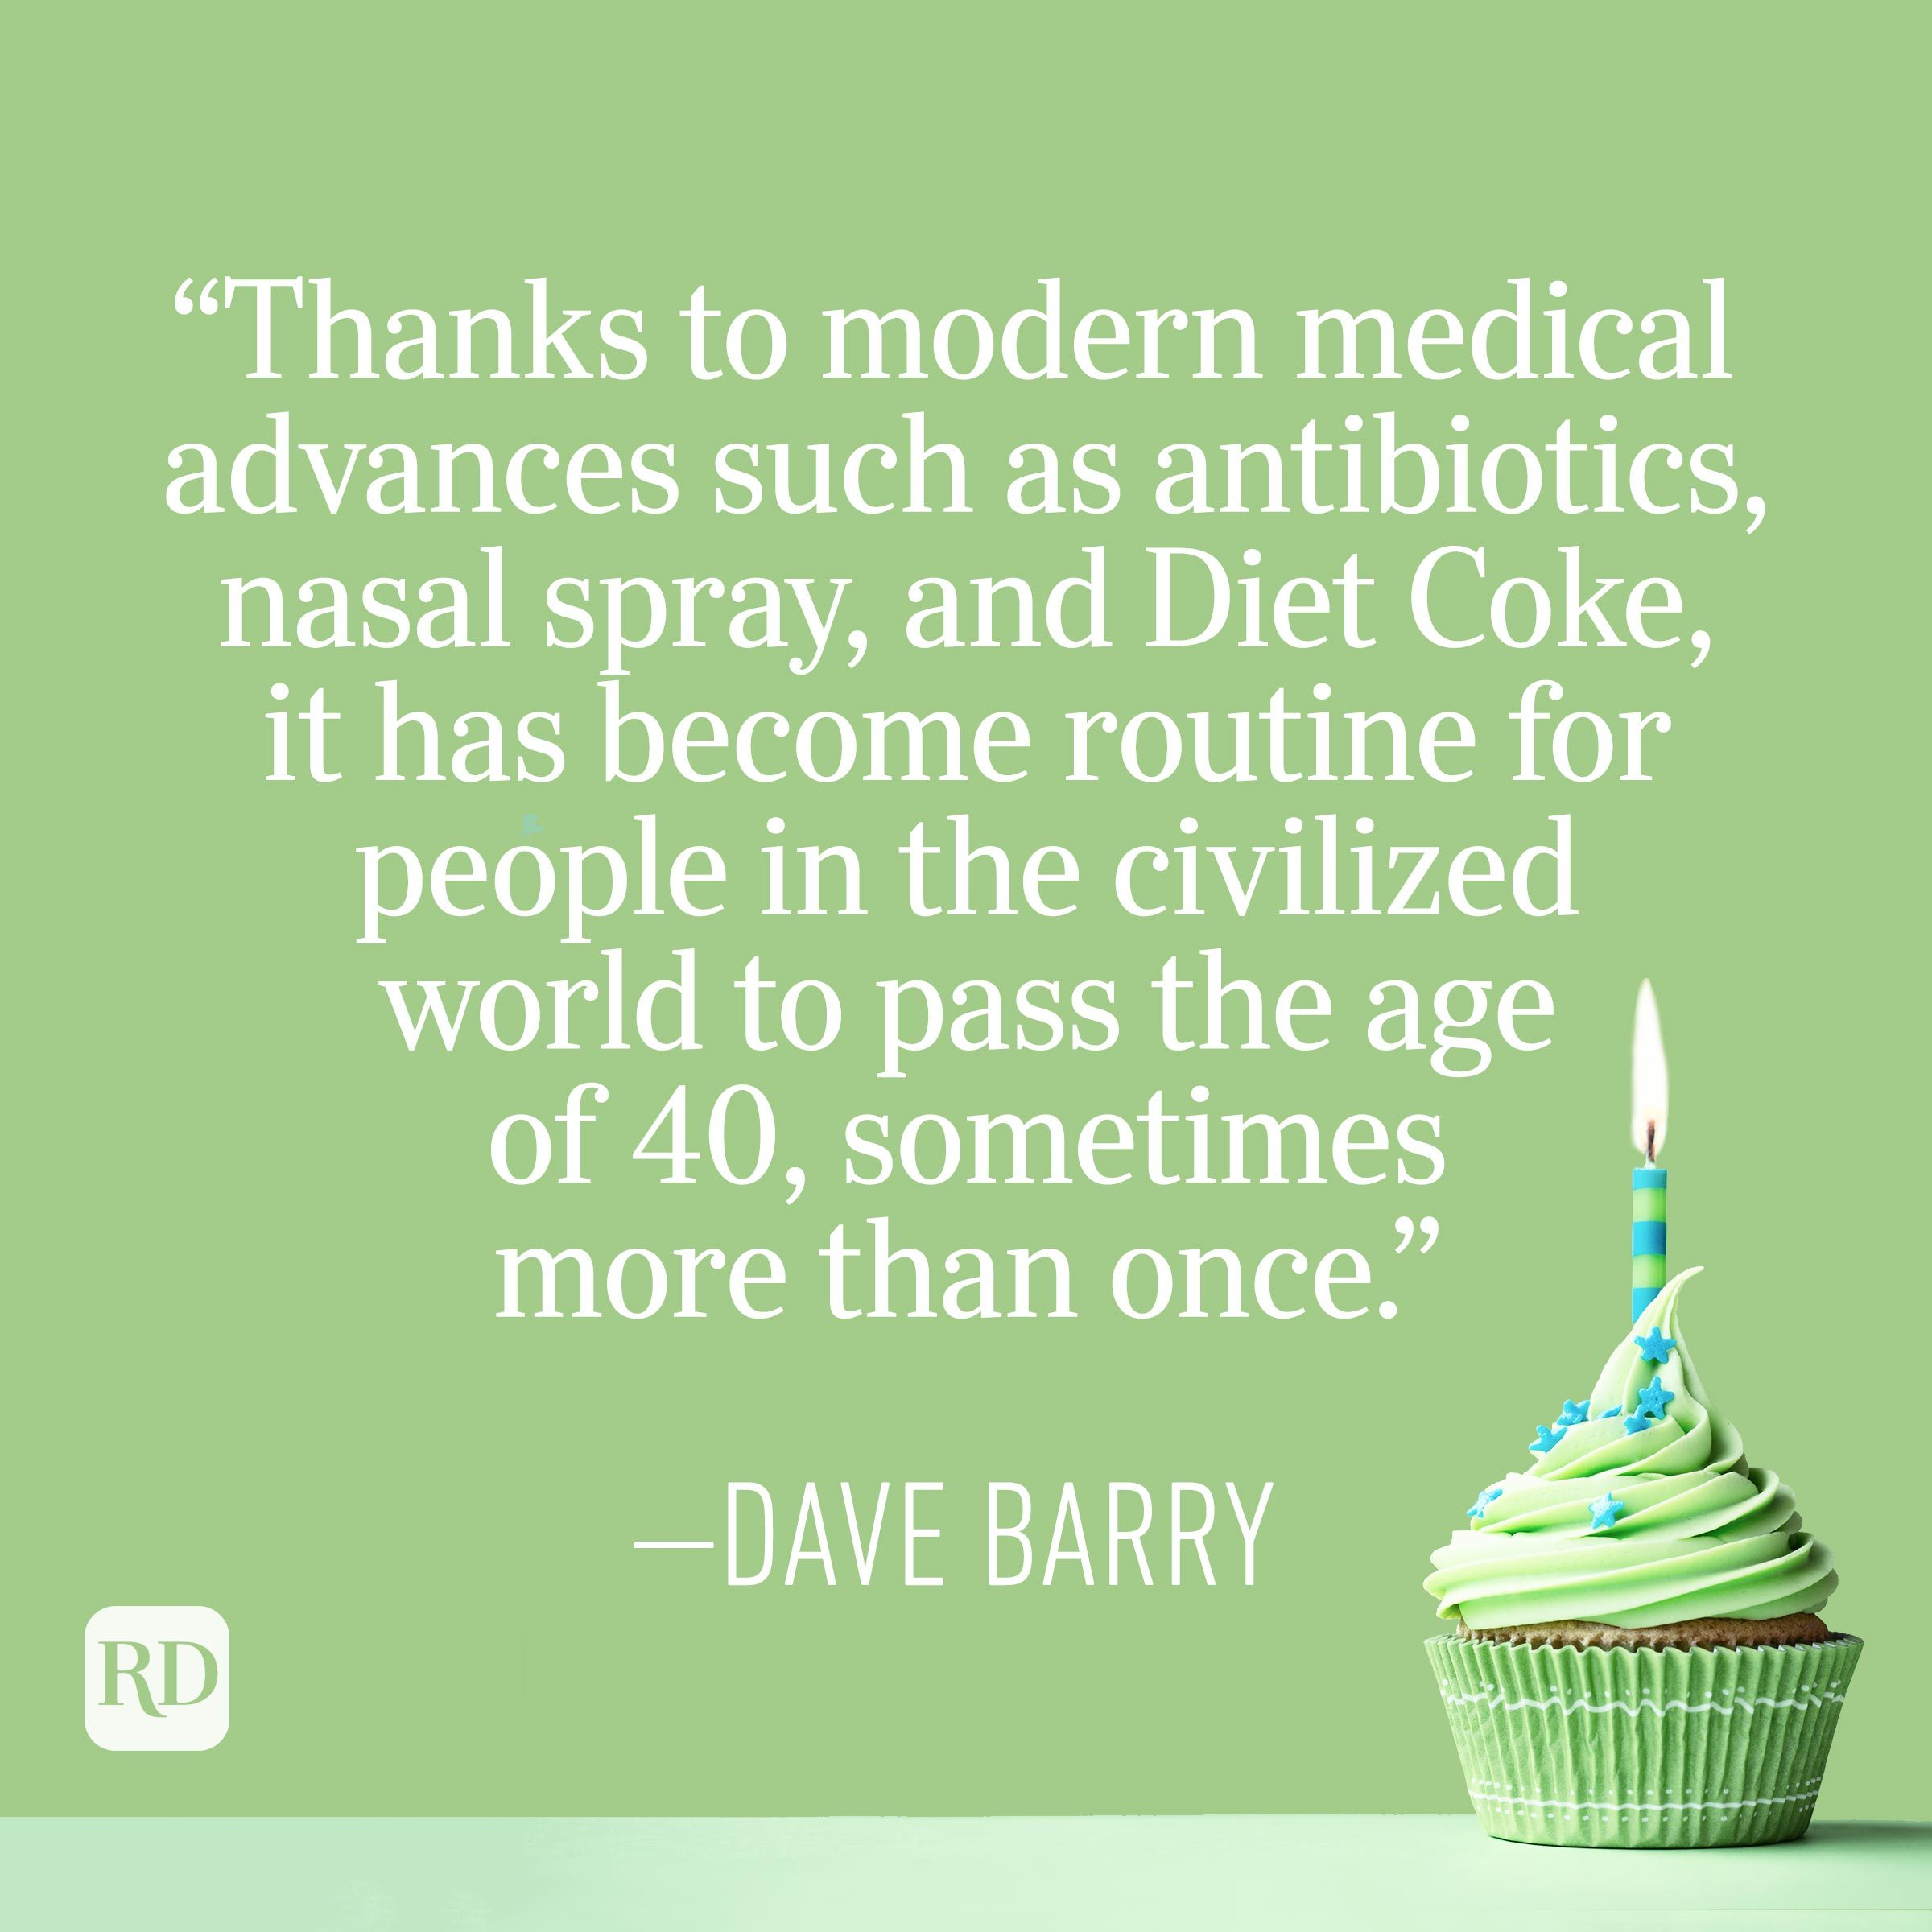 """""""Thanks to modern medical advances such as antibiotics, nasal spray, and Diet Coke, it has become routine for people in the civilized world to pass the age of 40, sometimes more than once."""" —Dave Barry"""